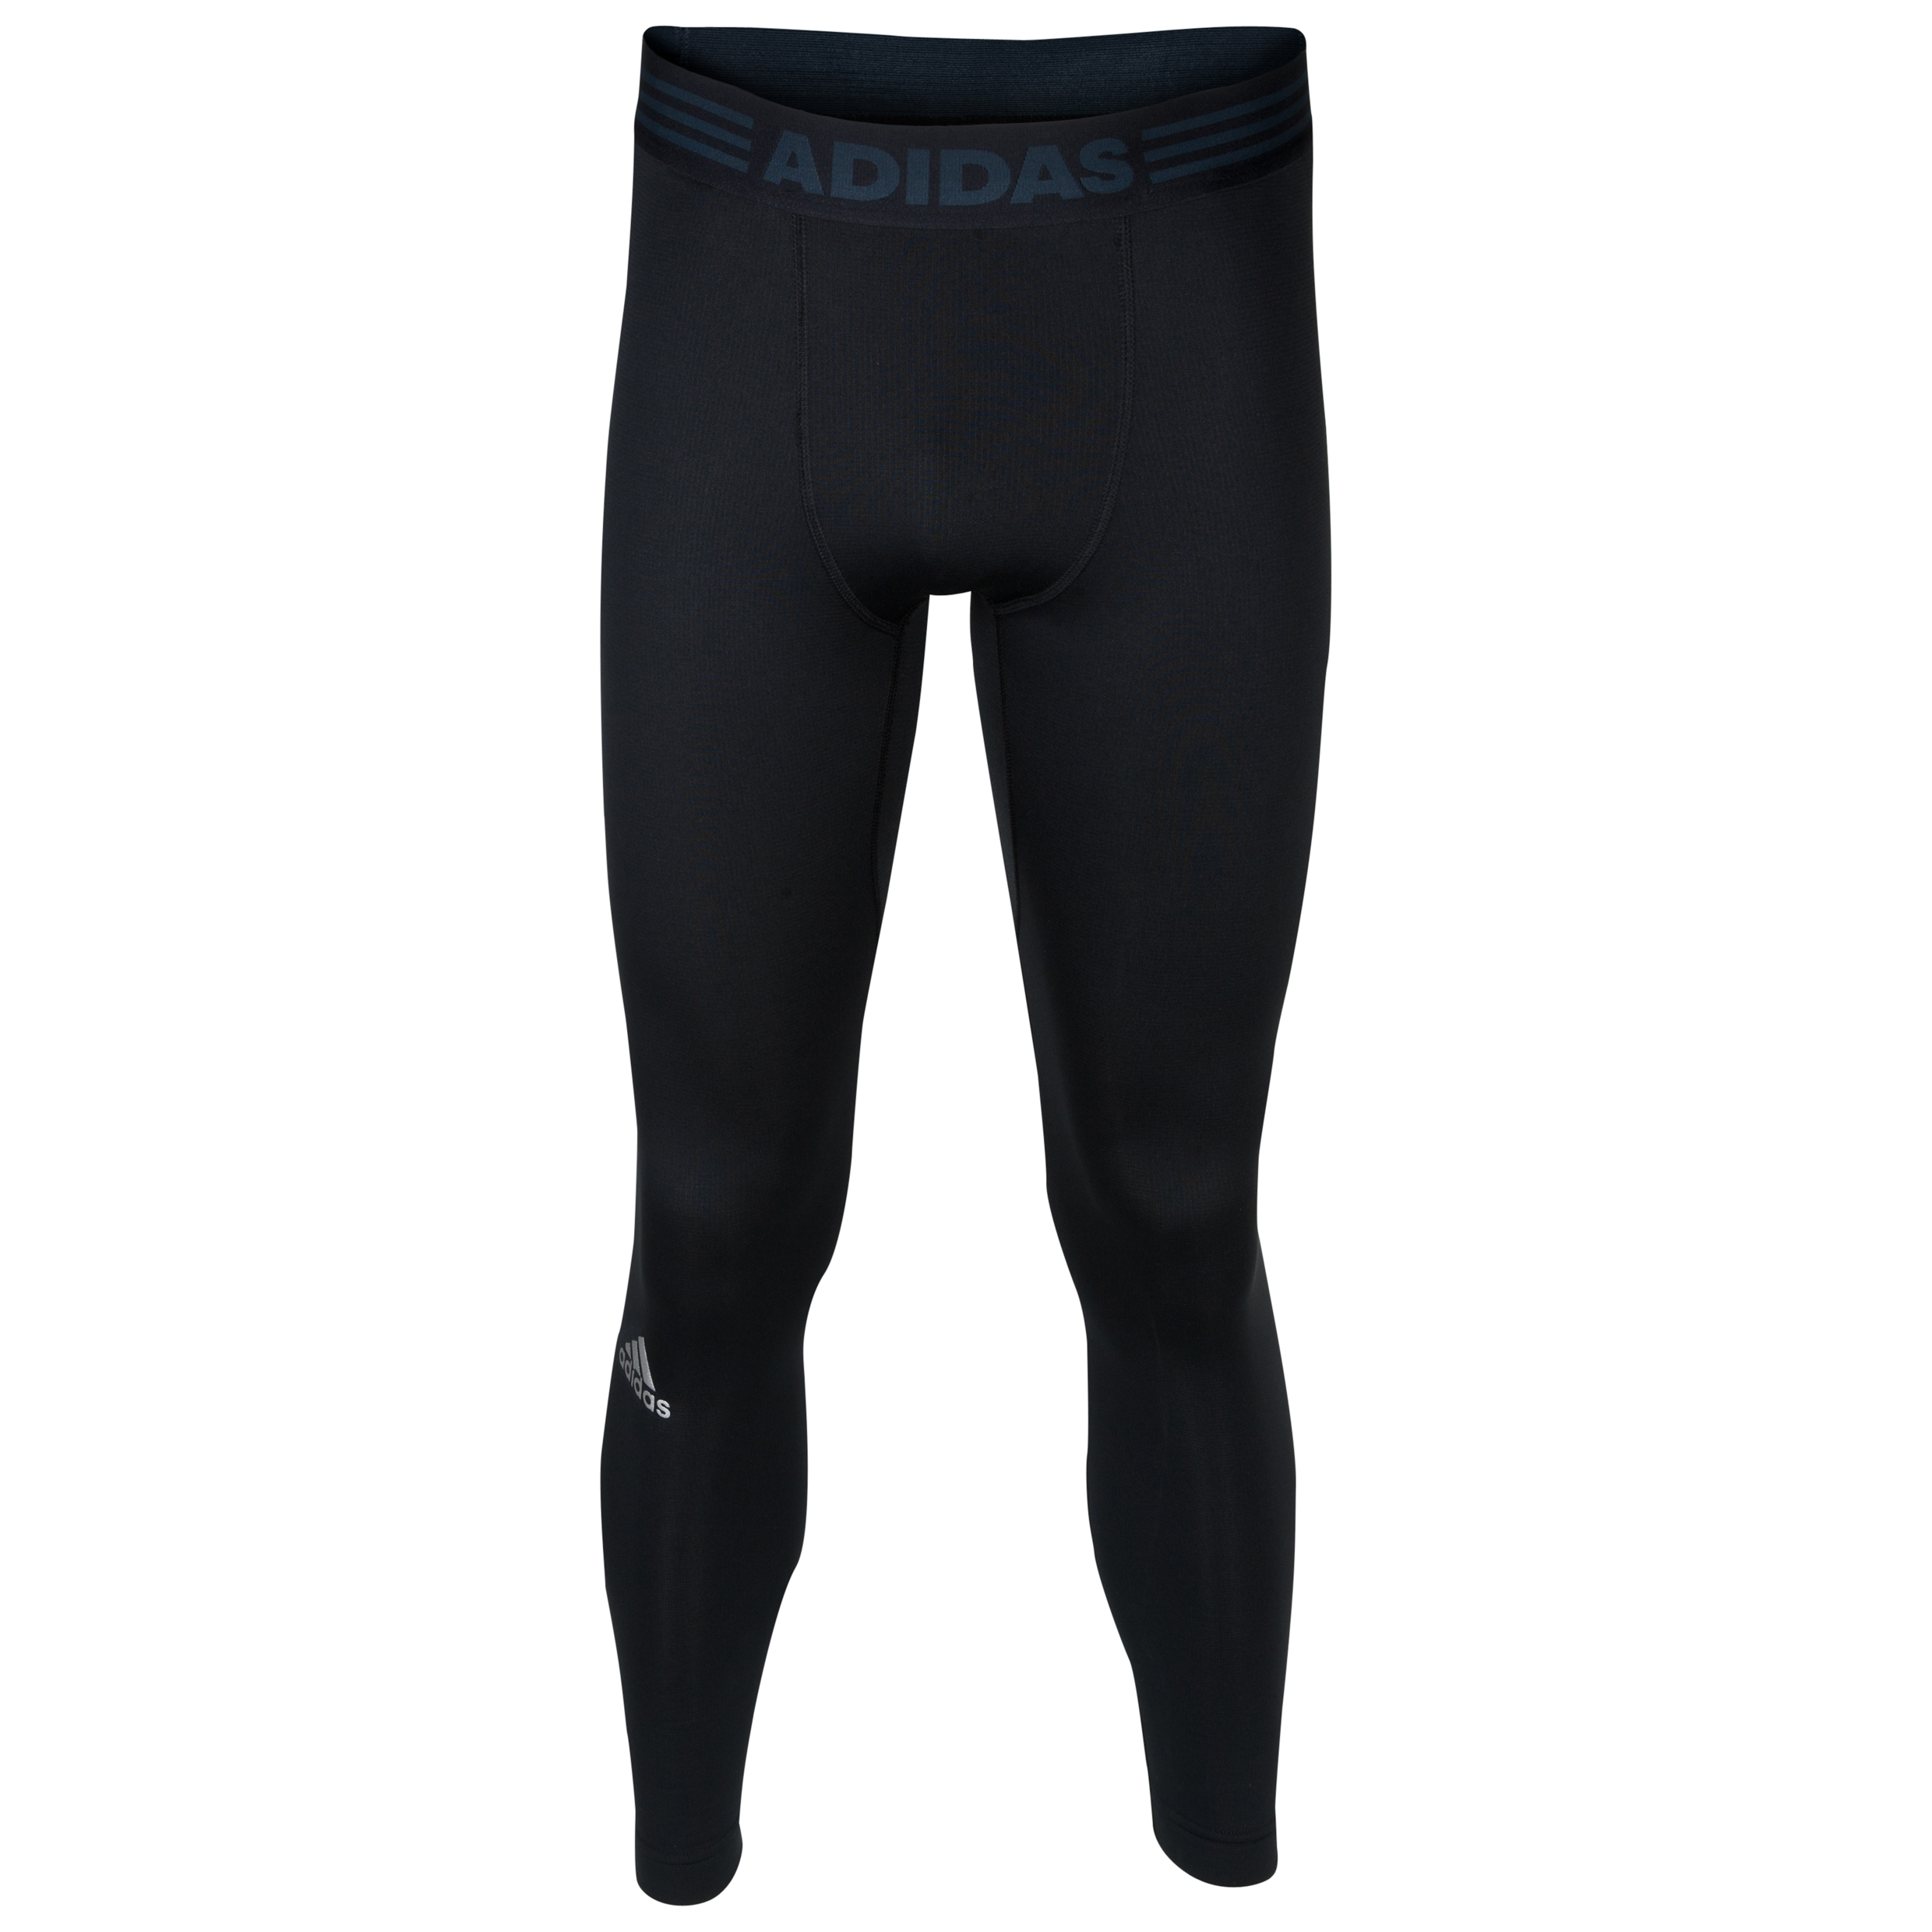 Adidas TechFit Hollow Base Layer Tights Black